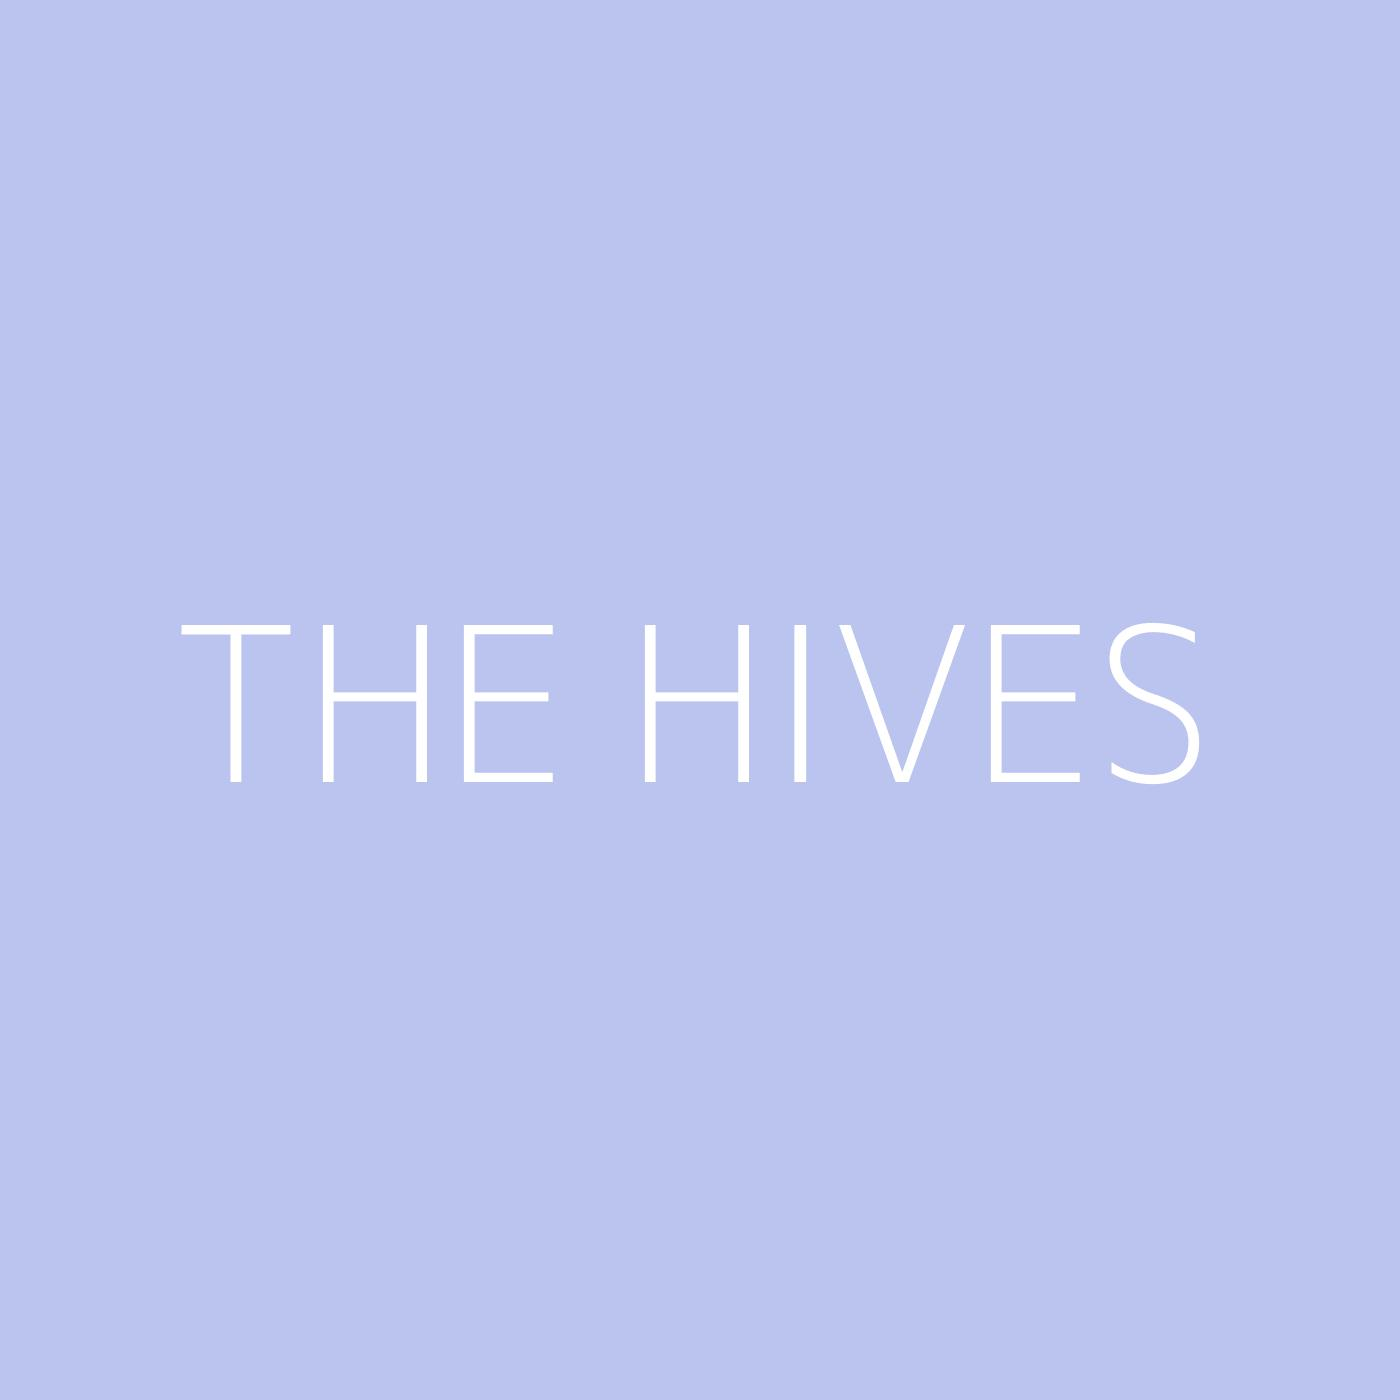 The Hives Playlist Artwork